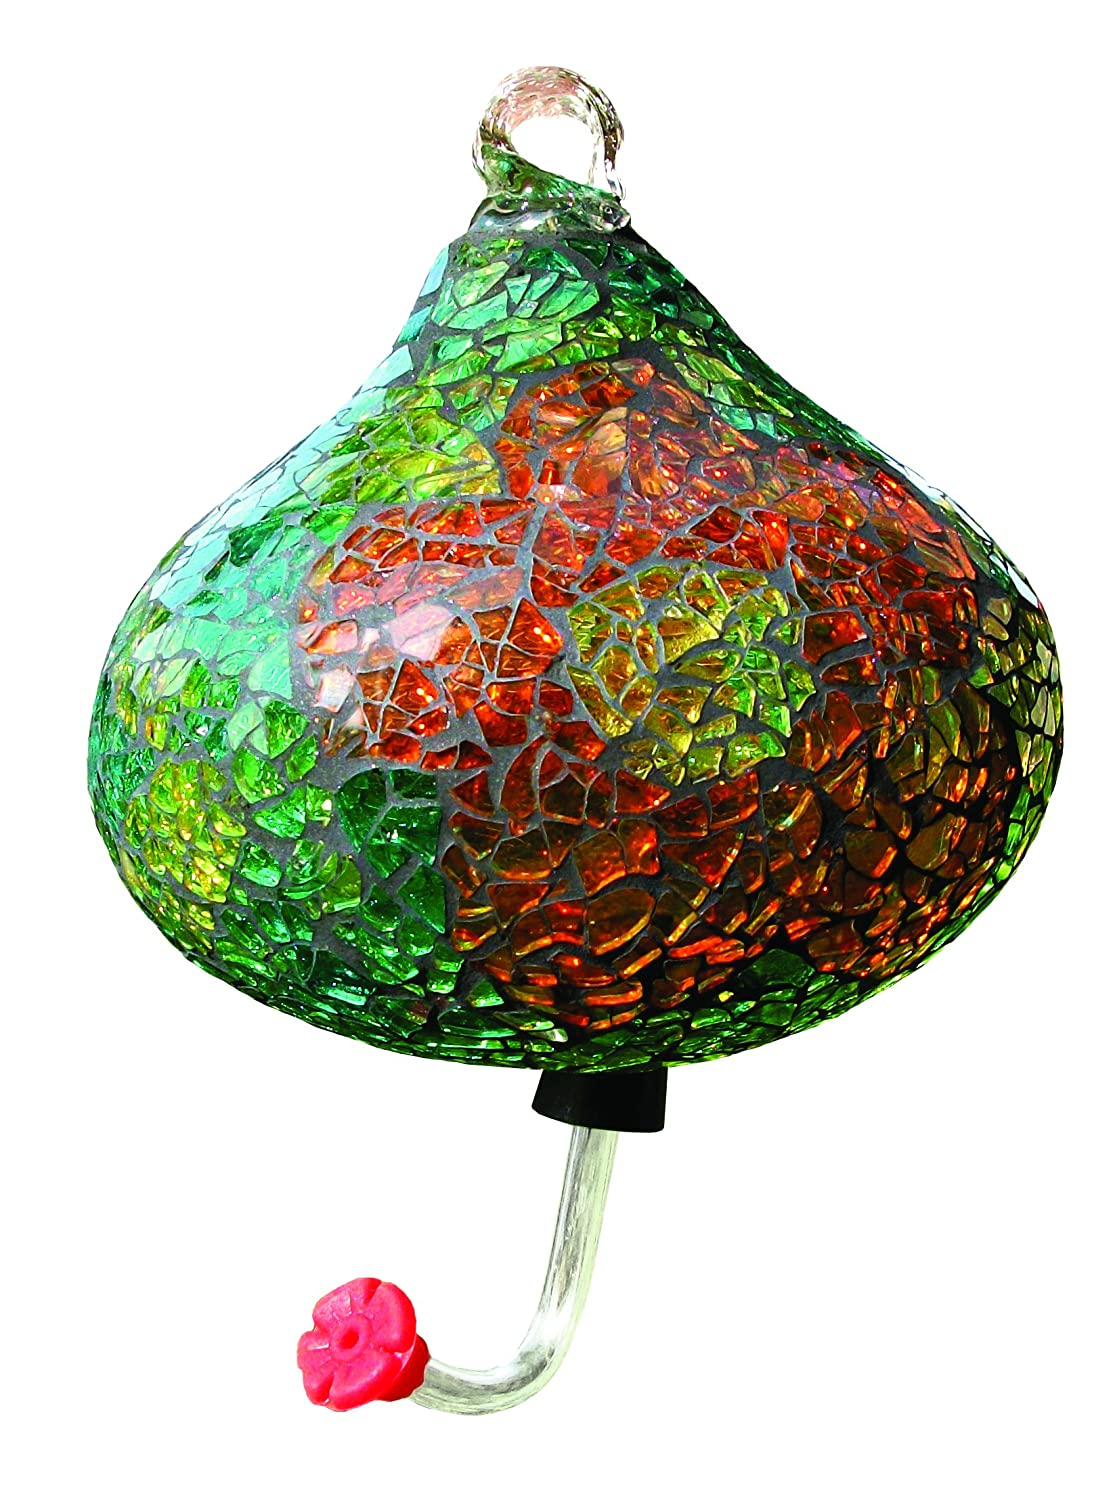 Gardman BA05726 Green Teardrop Mosaic Glass Hummingbird Feeder World Source Partners